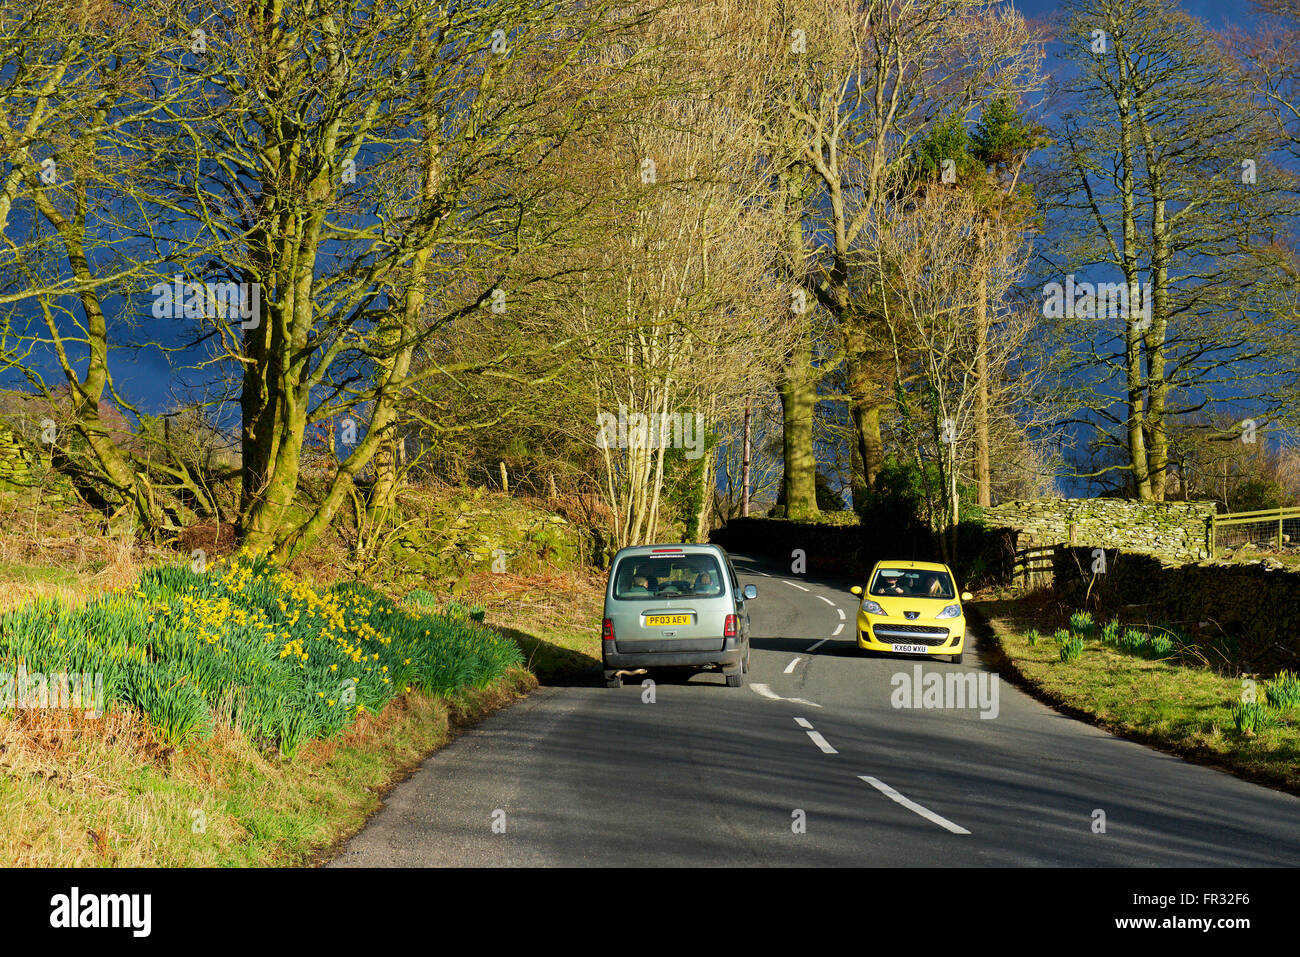 Two cars on country road in South Lakeland, Lake District National Park, Cumbria, England UK - Stock Image